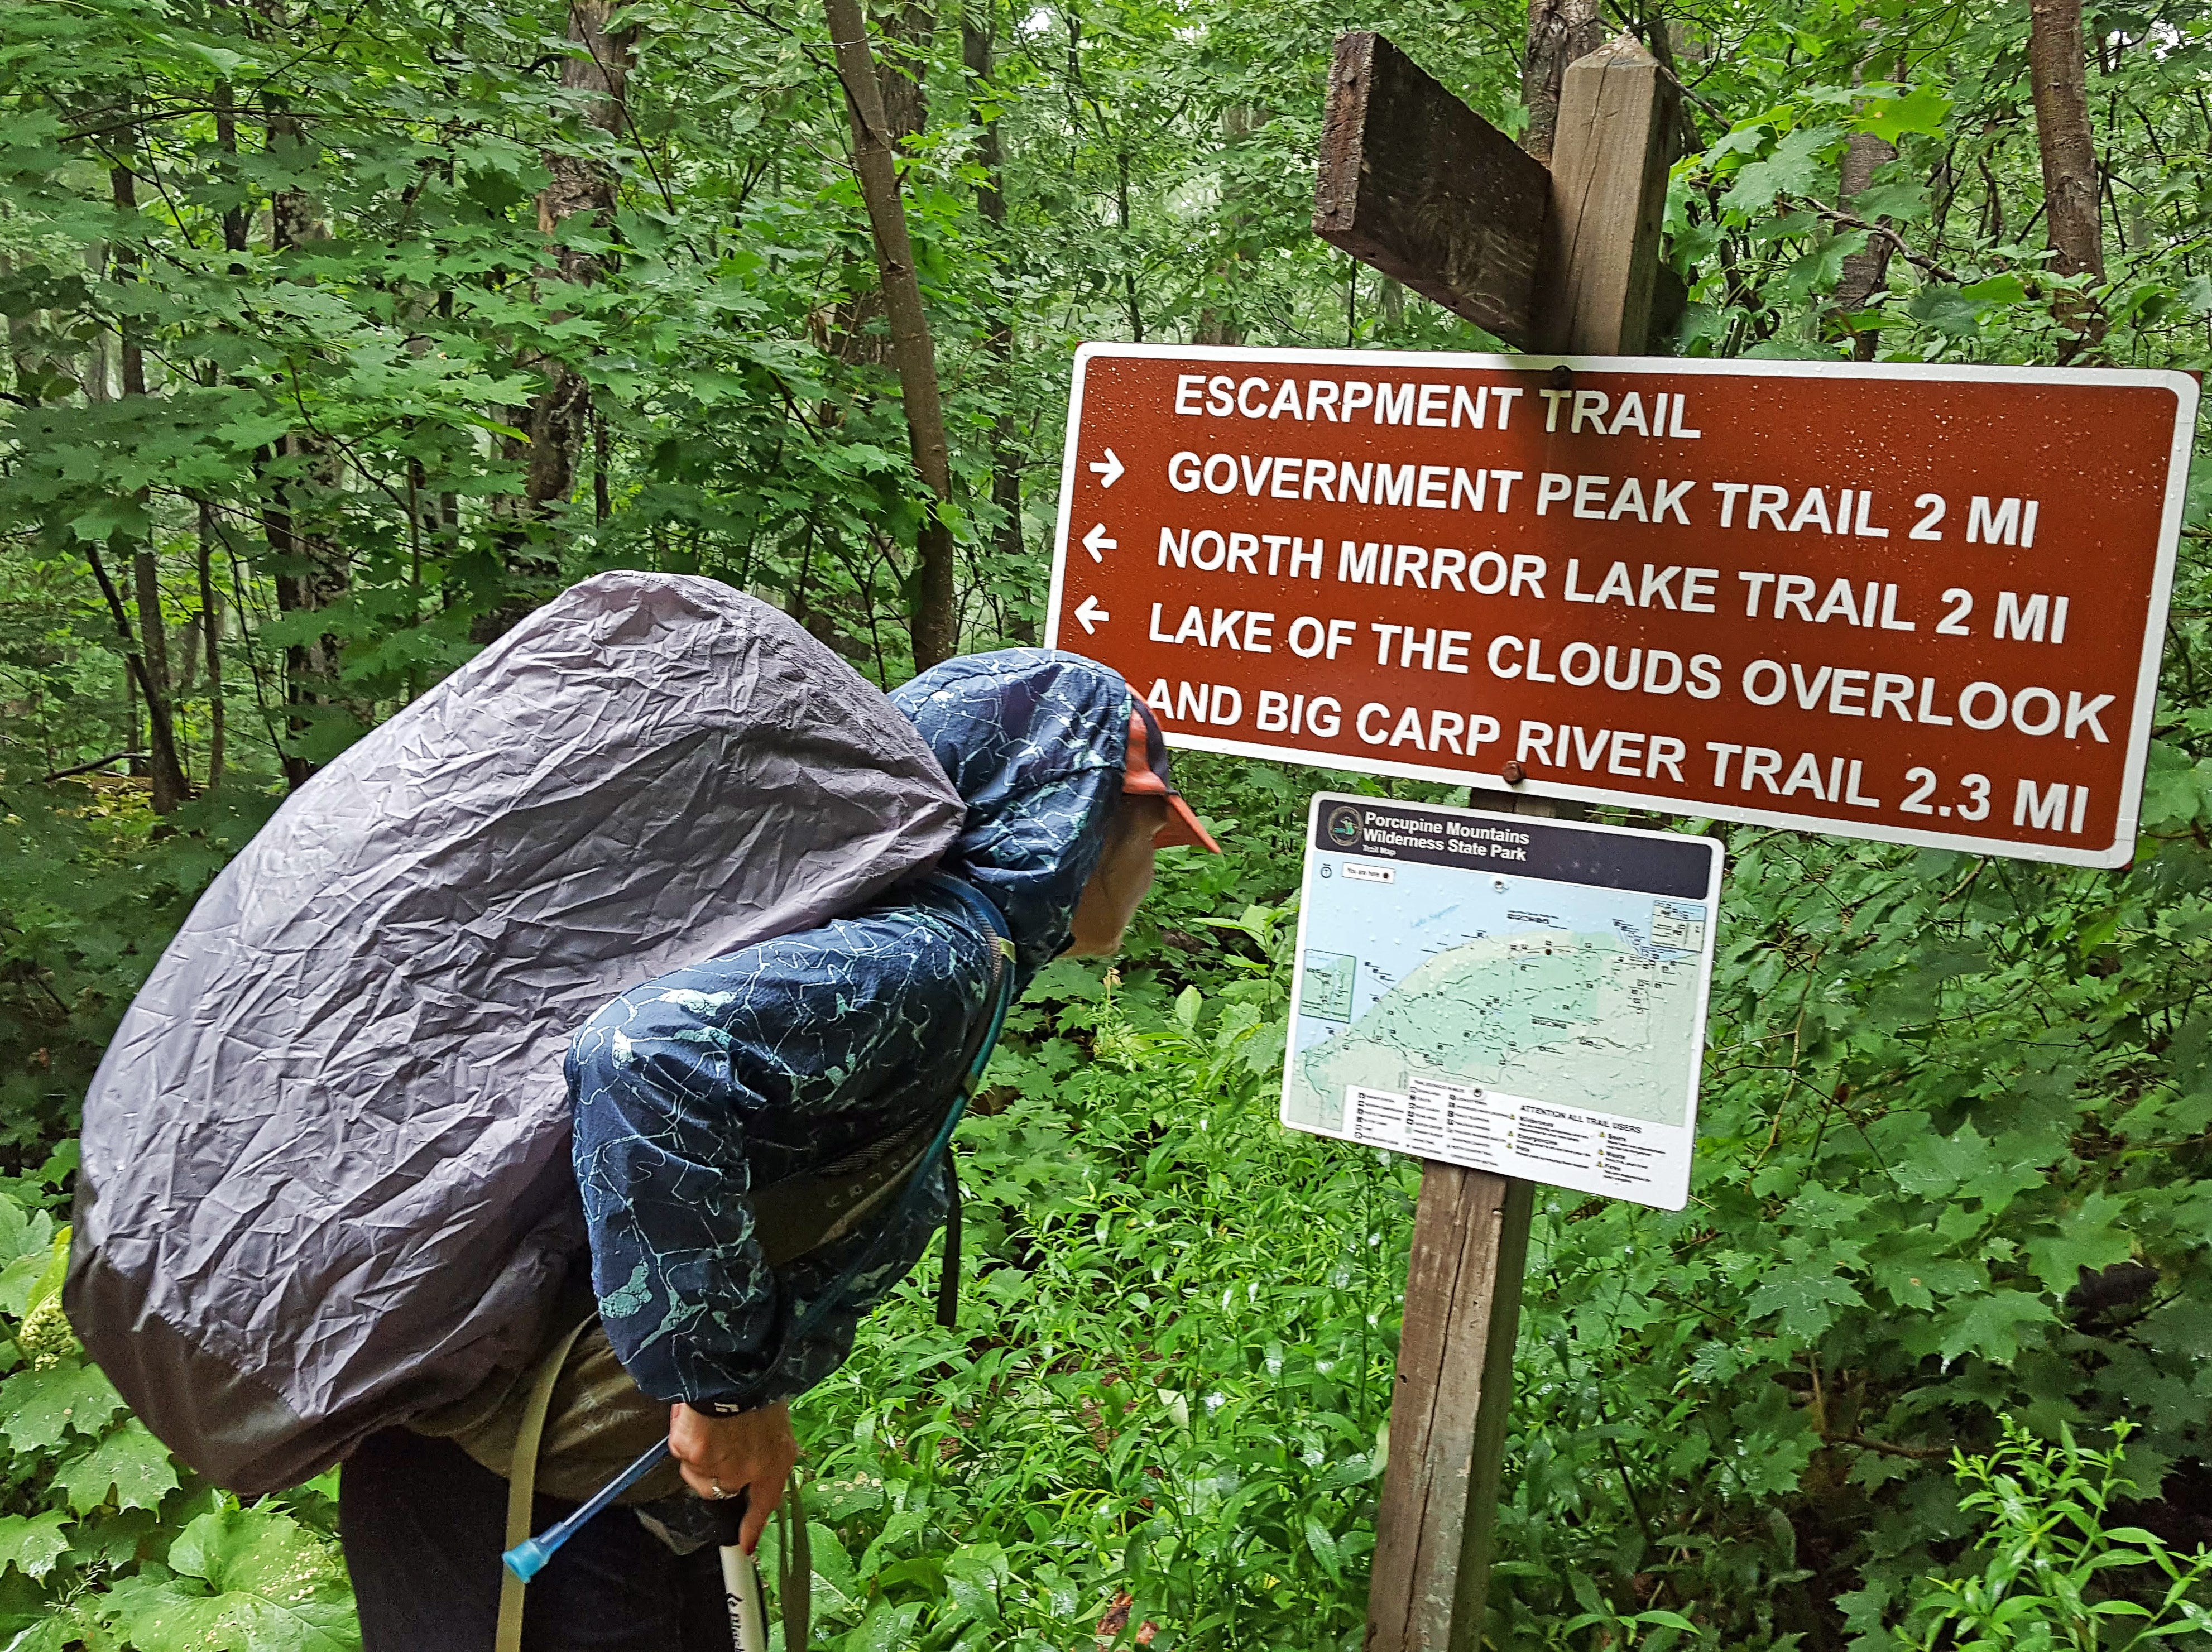 Carol Lewis looks at a map along the Escarpment Trail in the Porcupine Mountains Wilderness State Park in Michigan's Upper Peninsula.